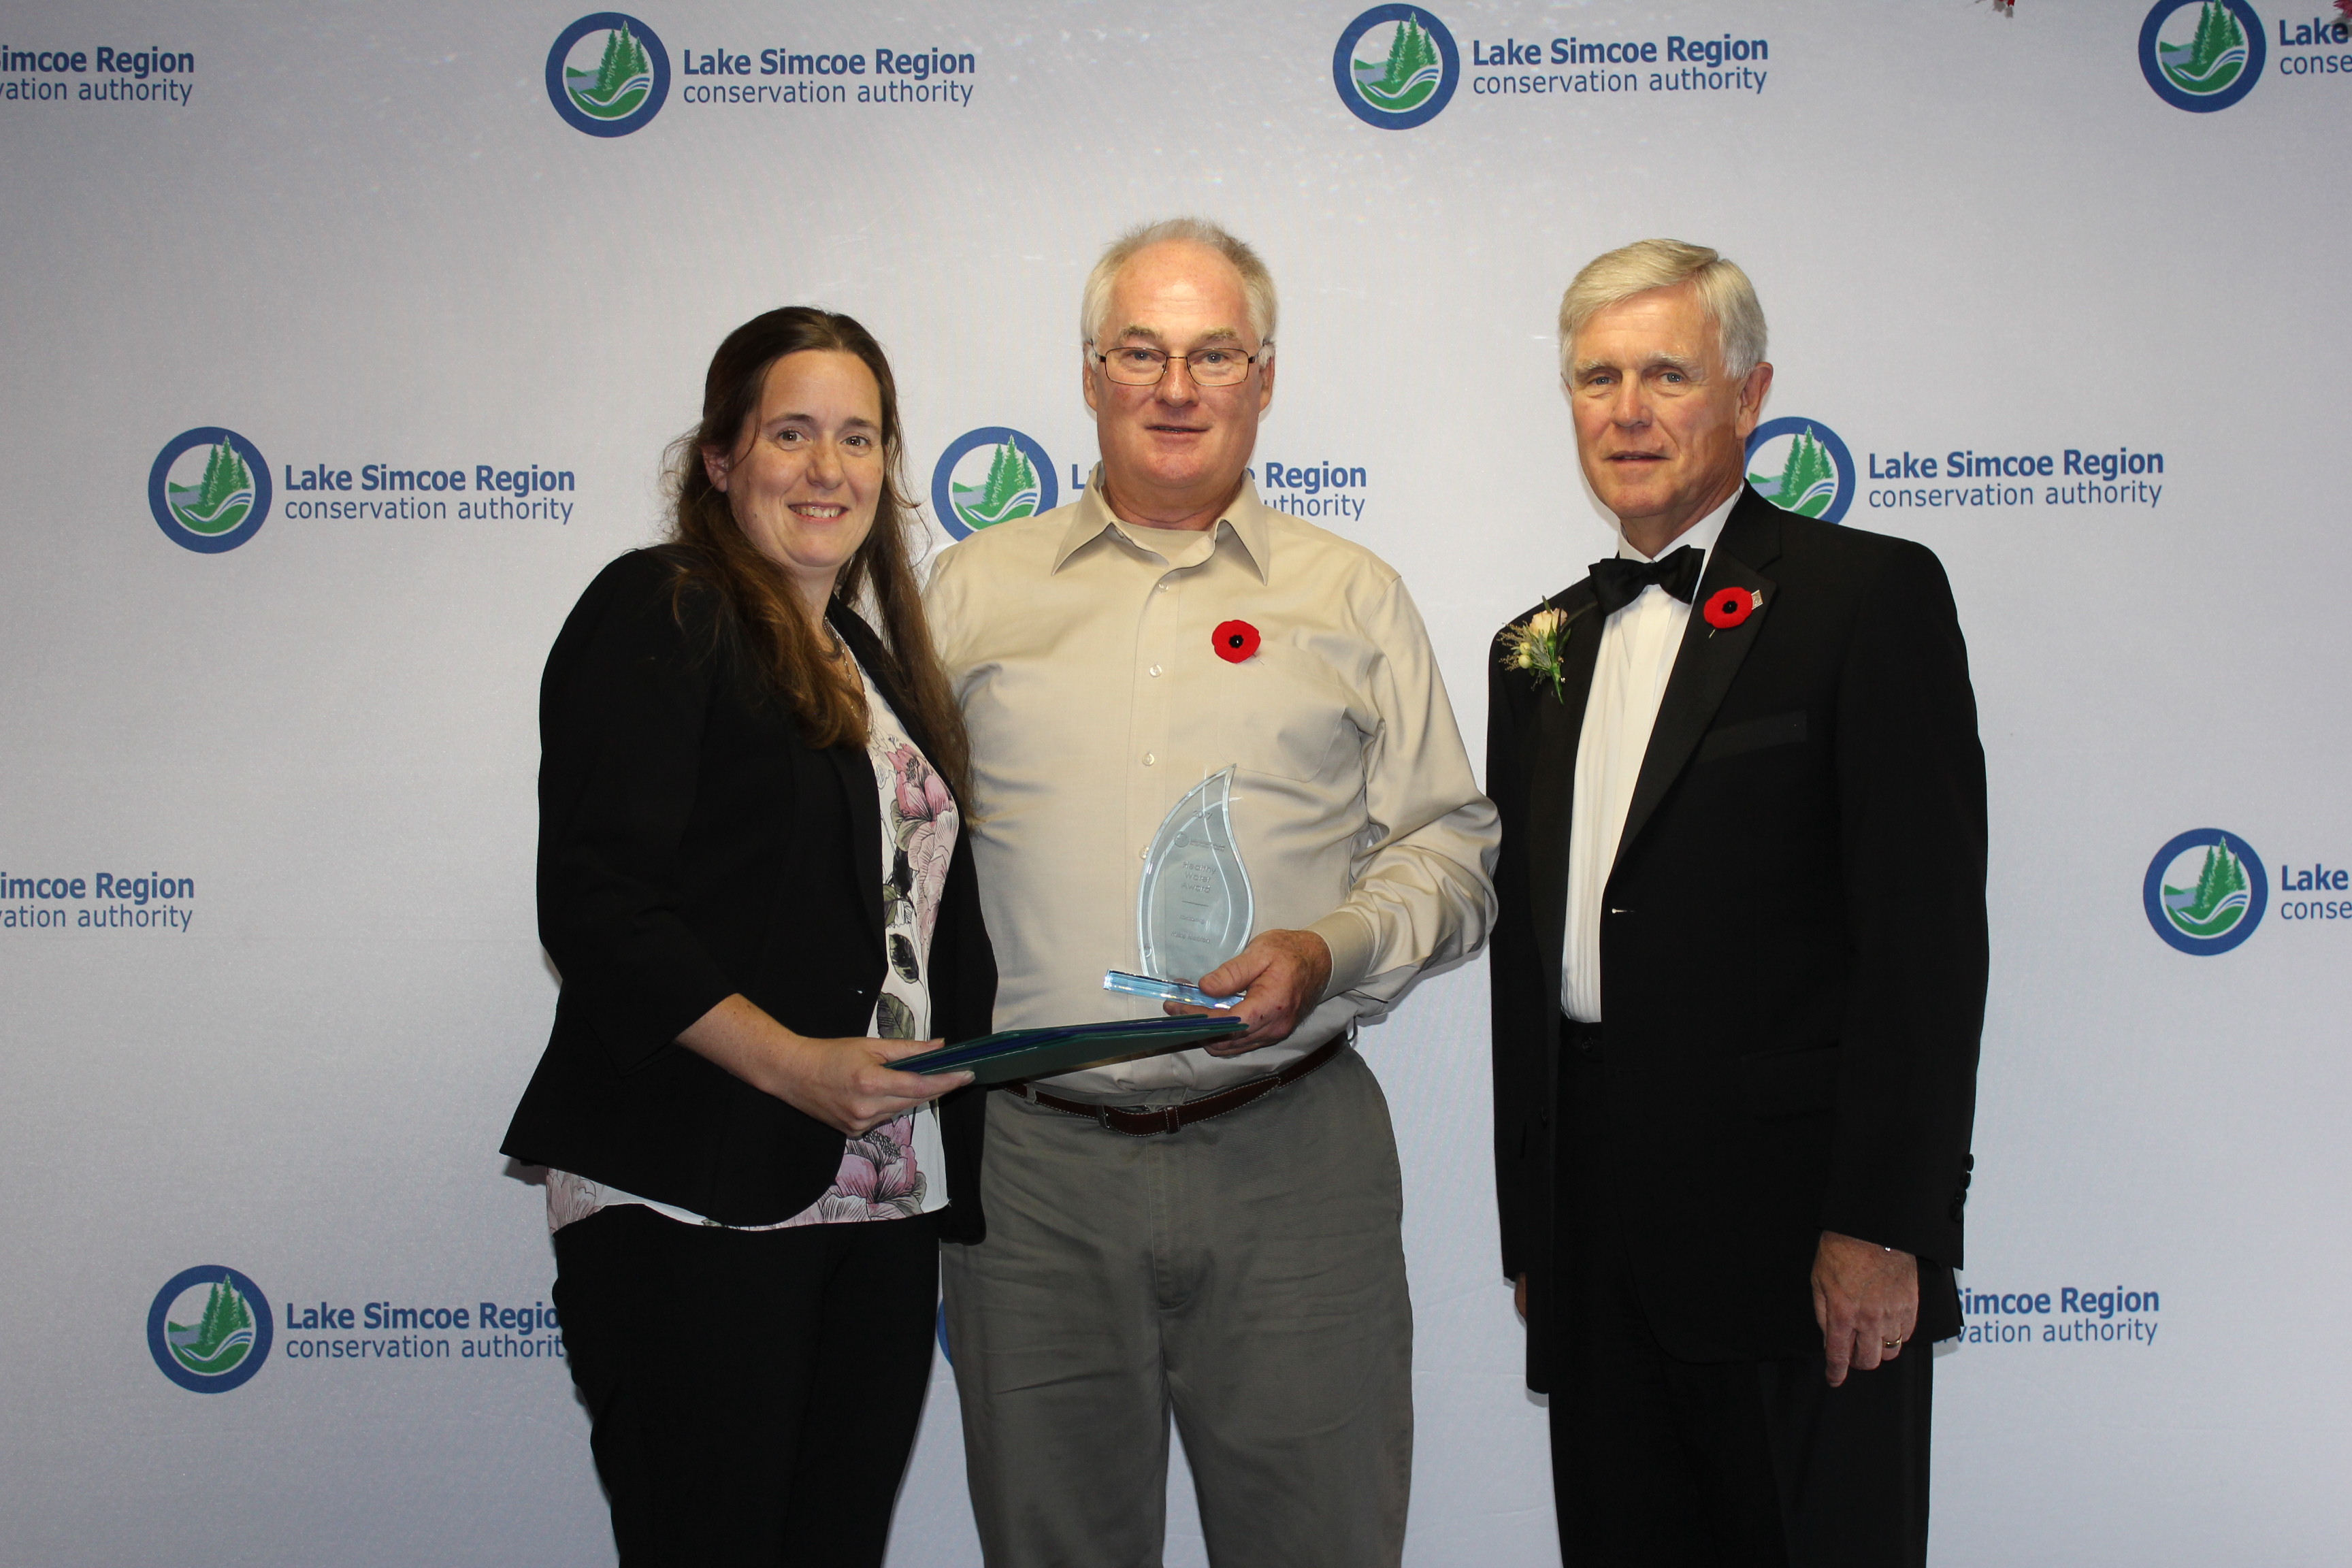 Healthy Water Award - Mike Nealon